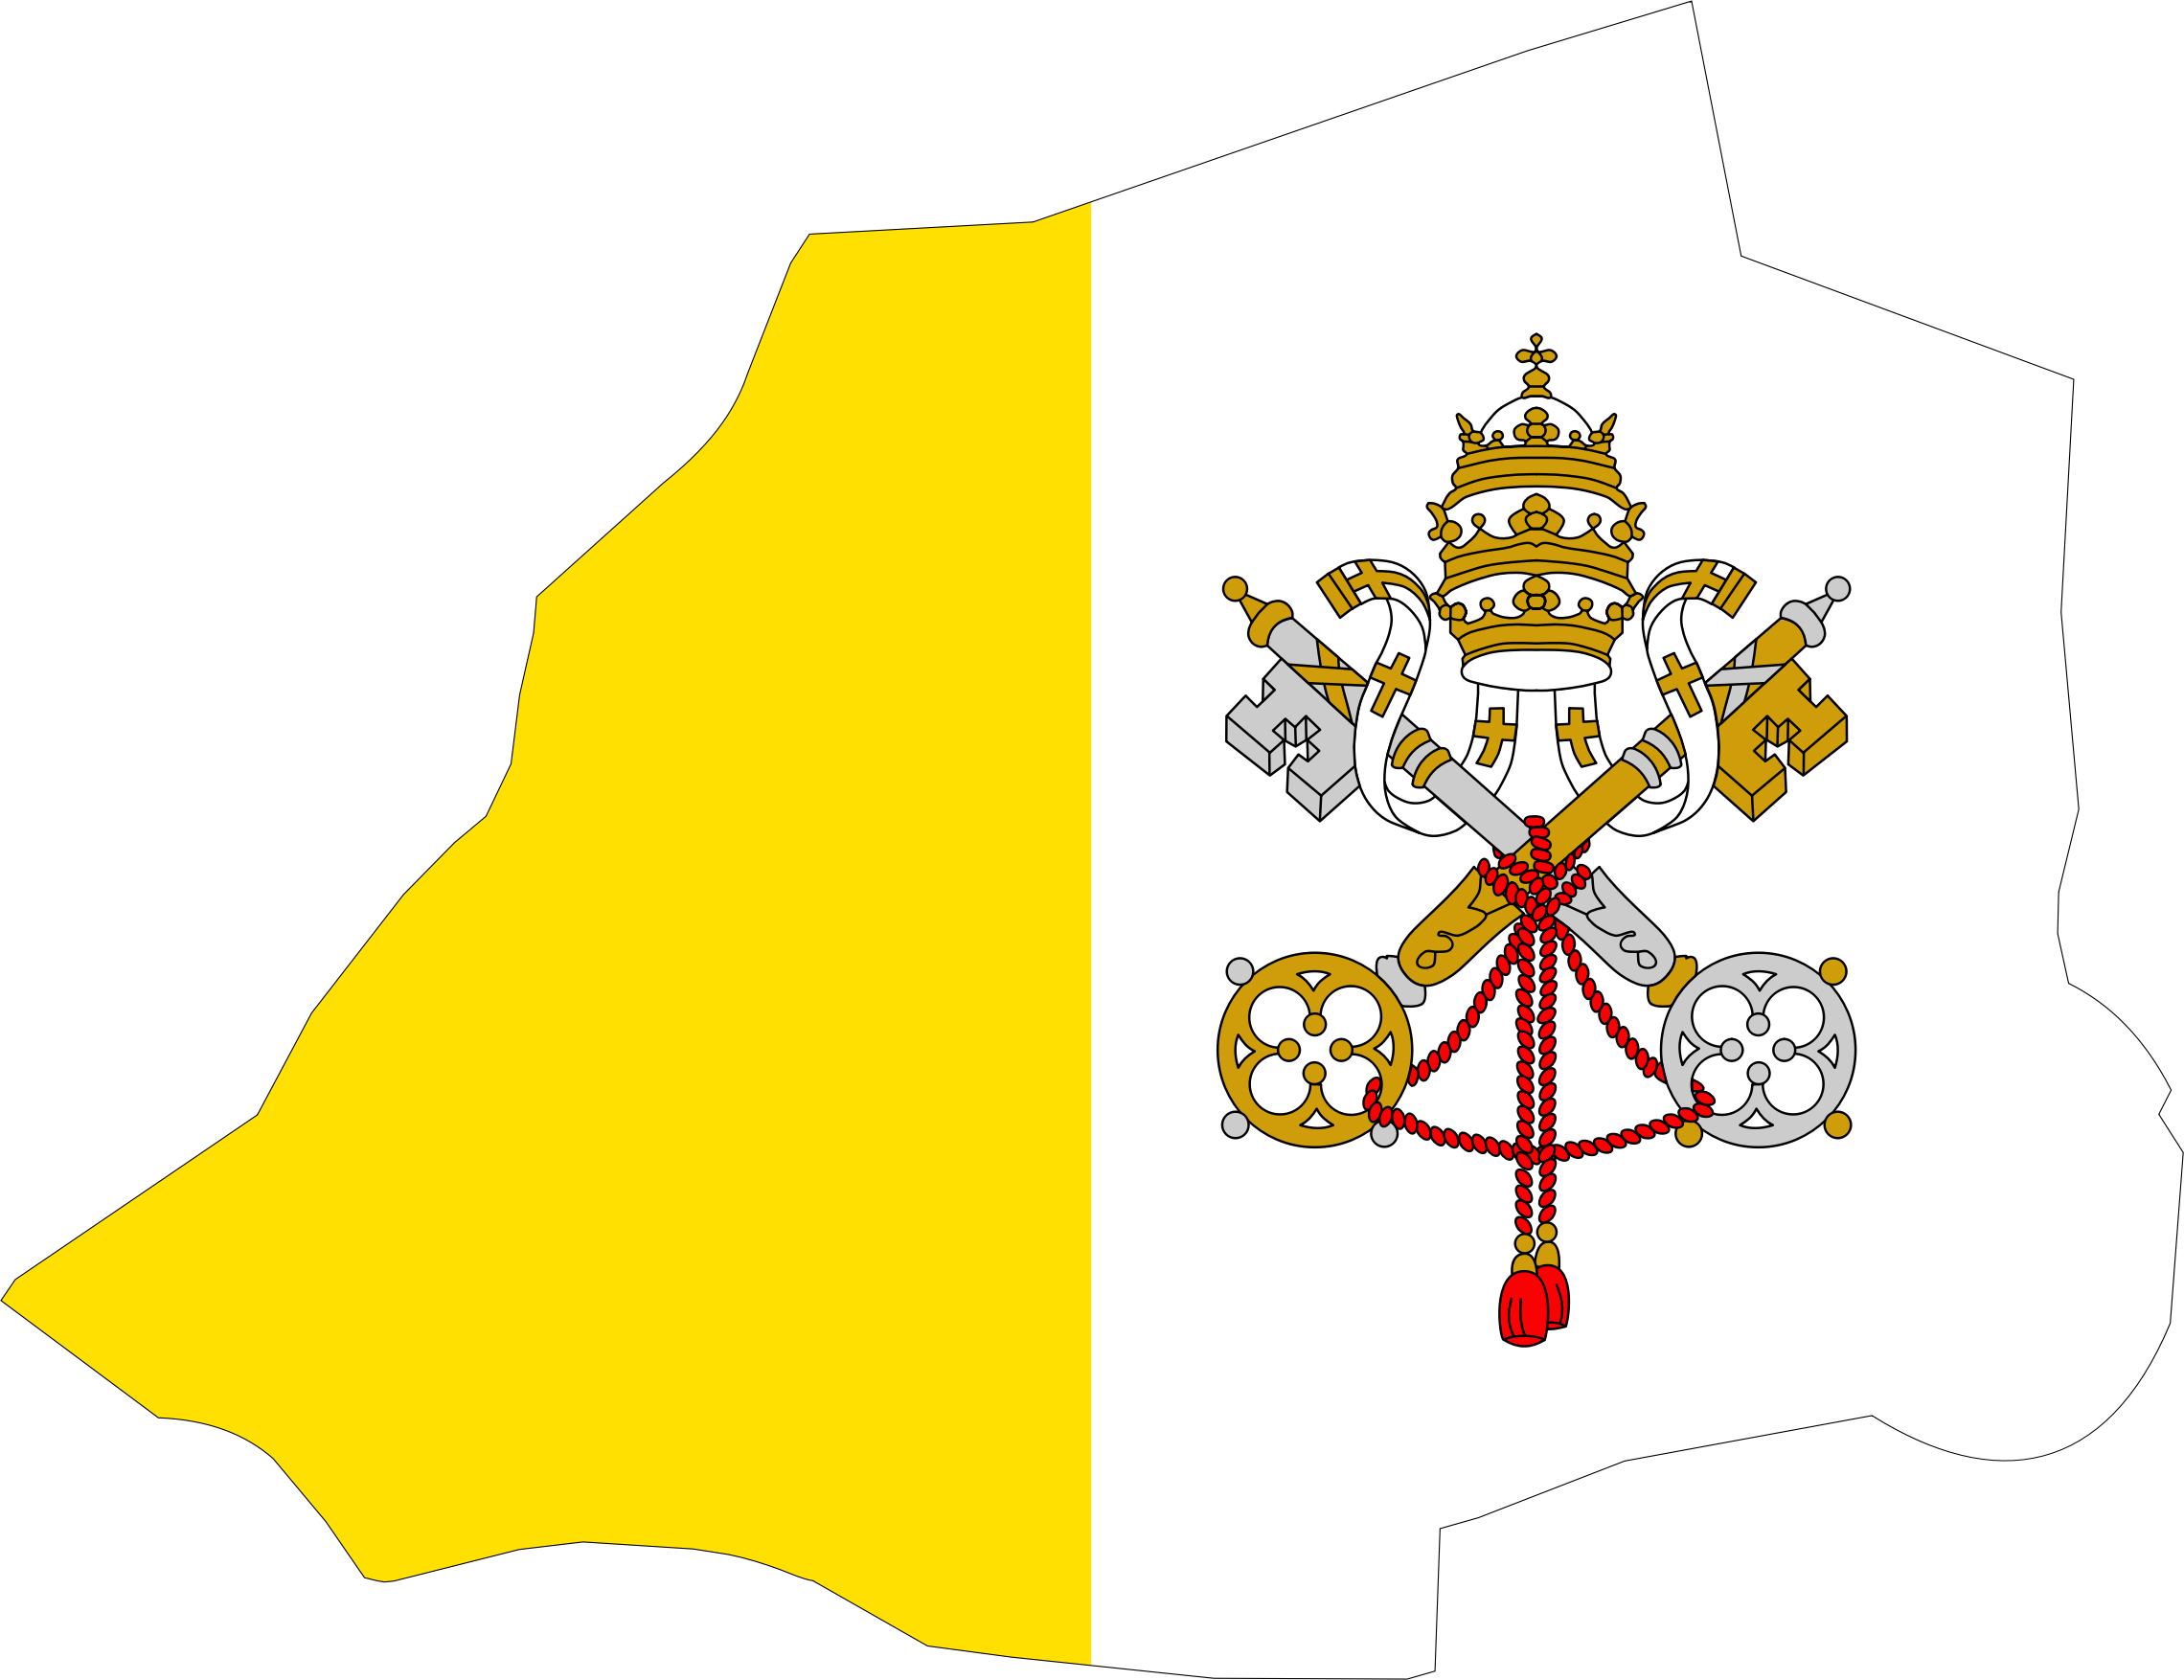 banner library Vatican flag big image. City map clipart.